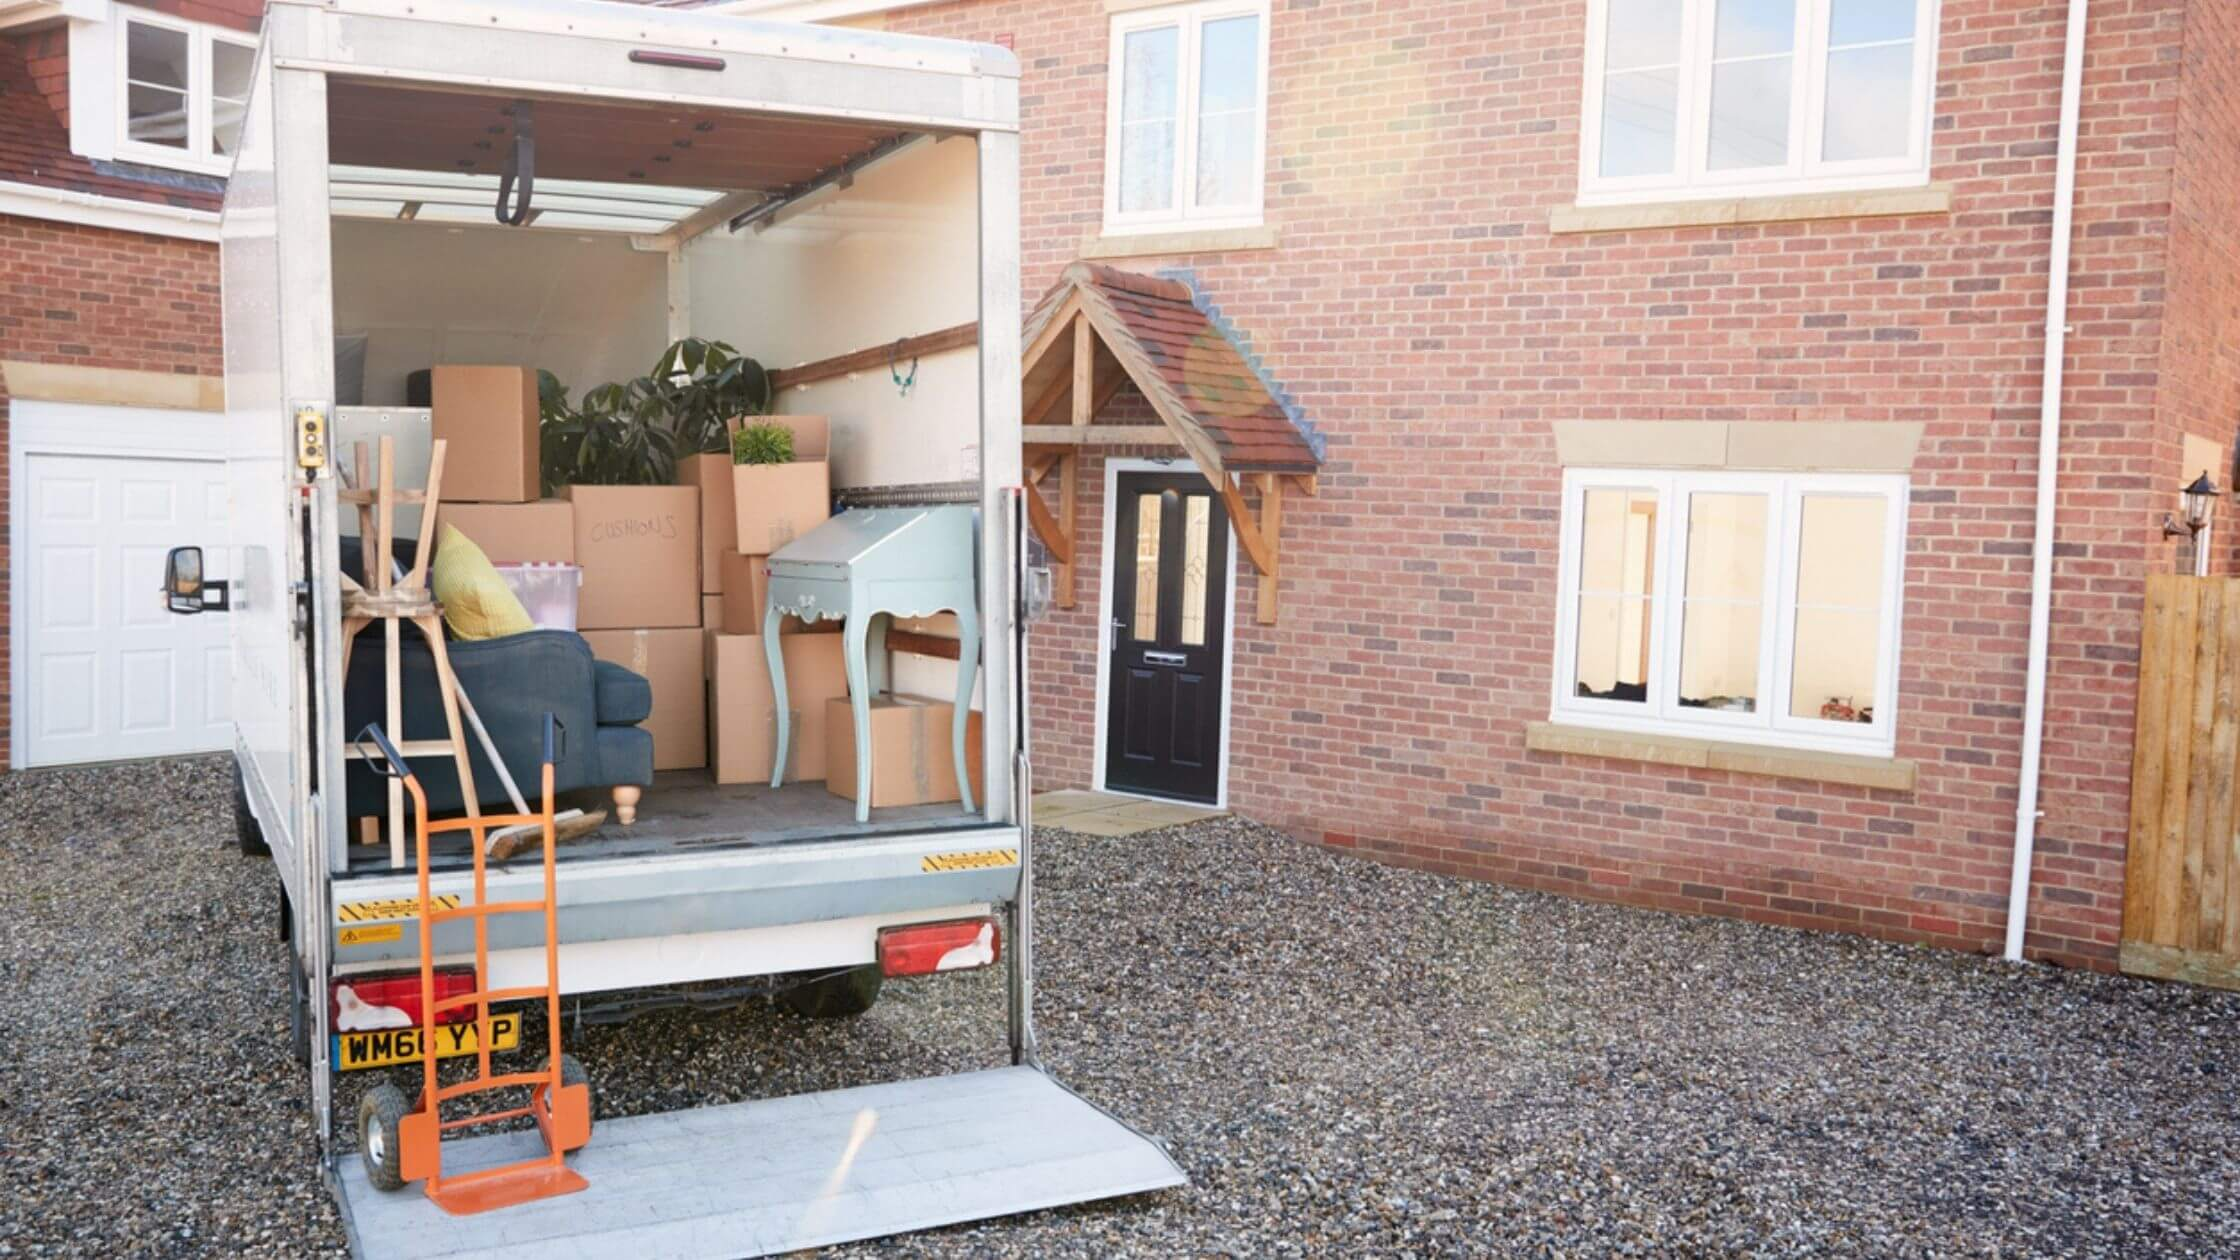 moving truck packed with items in front of an apartment building or home